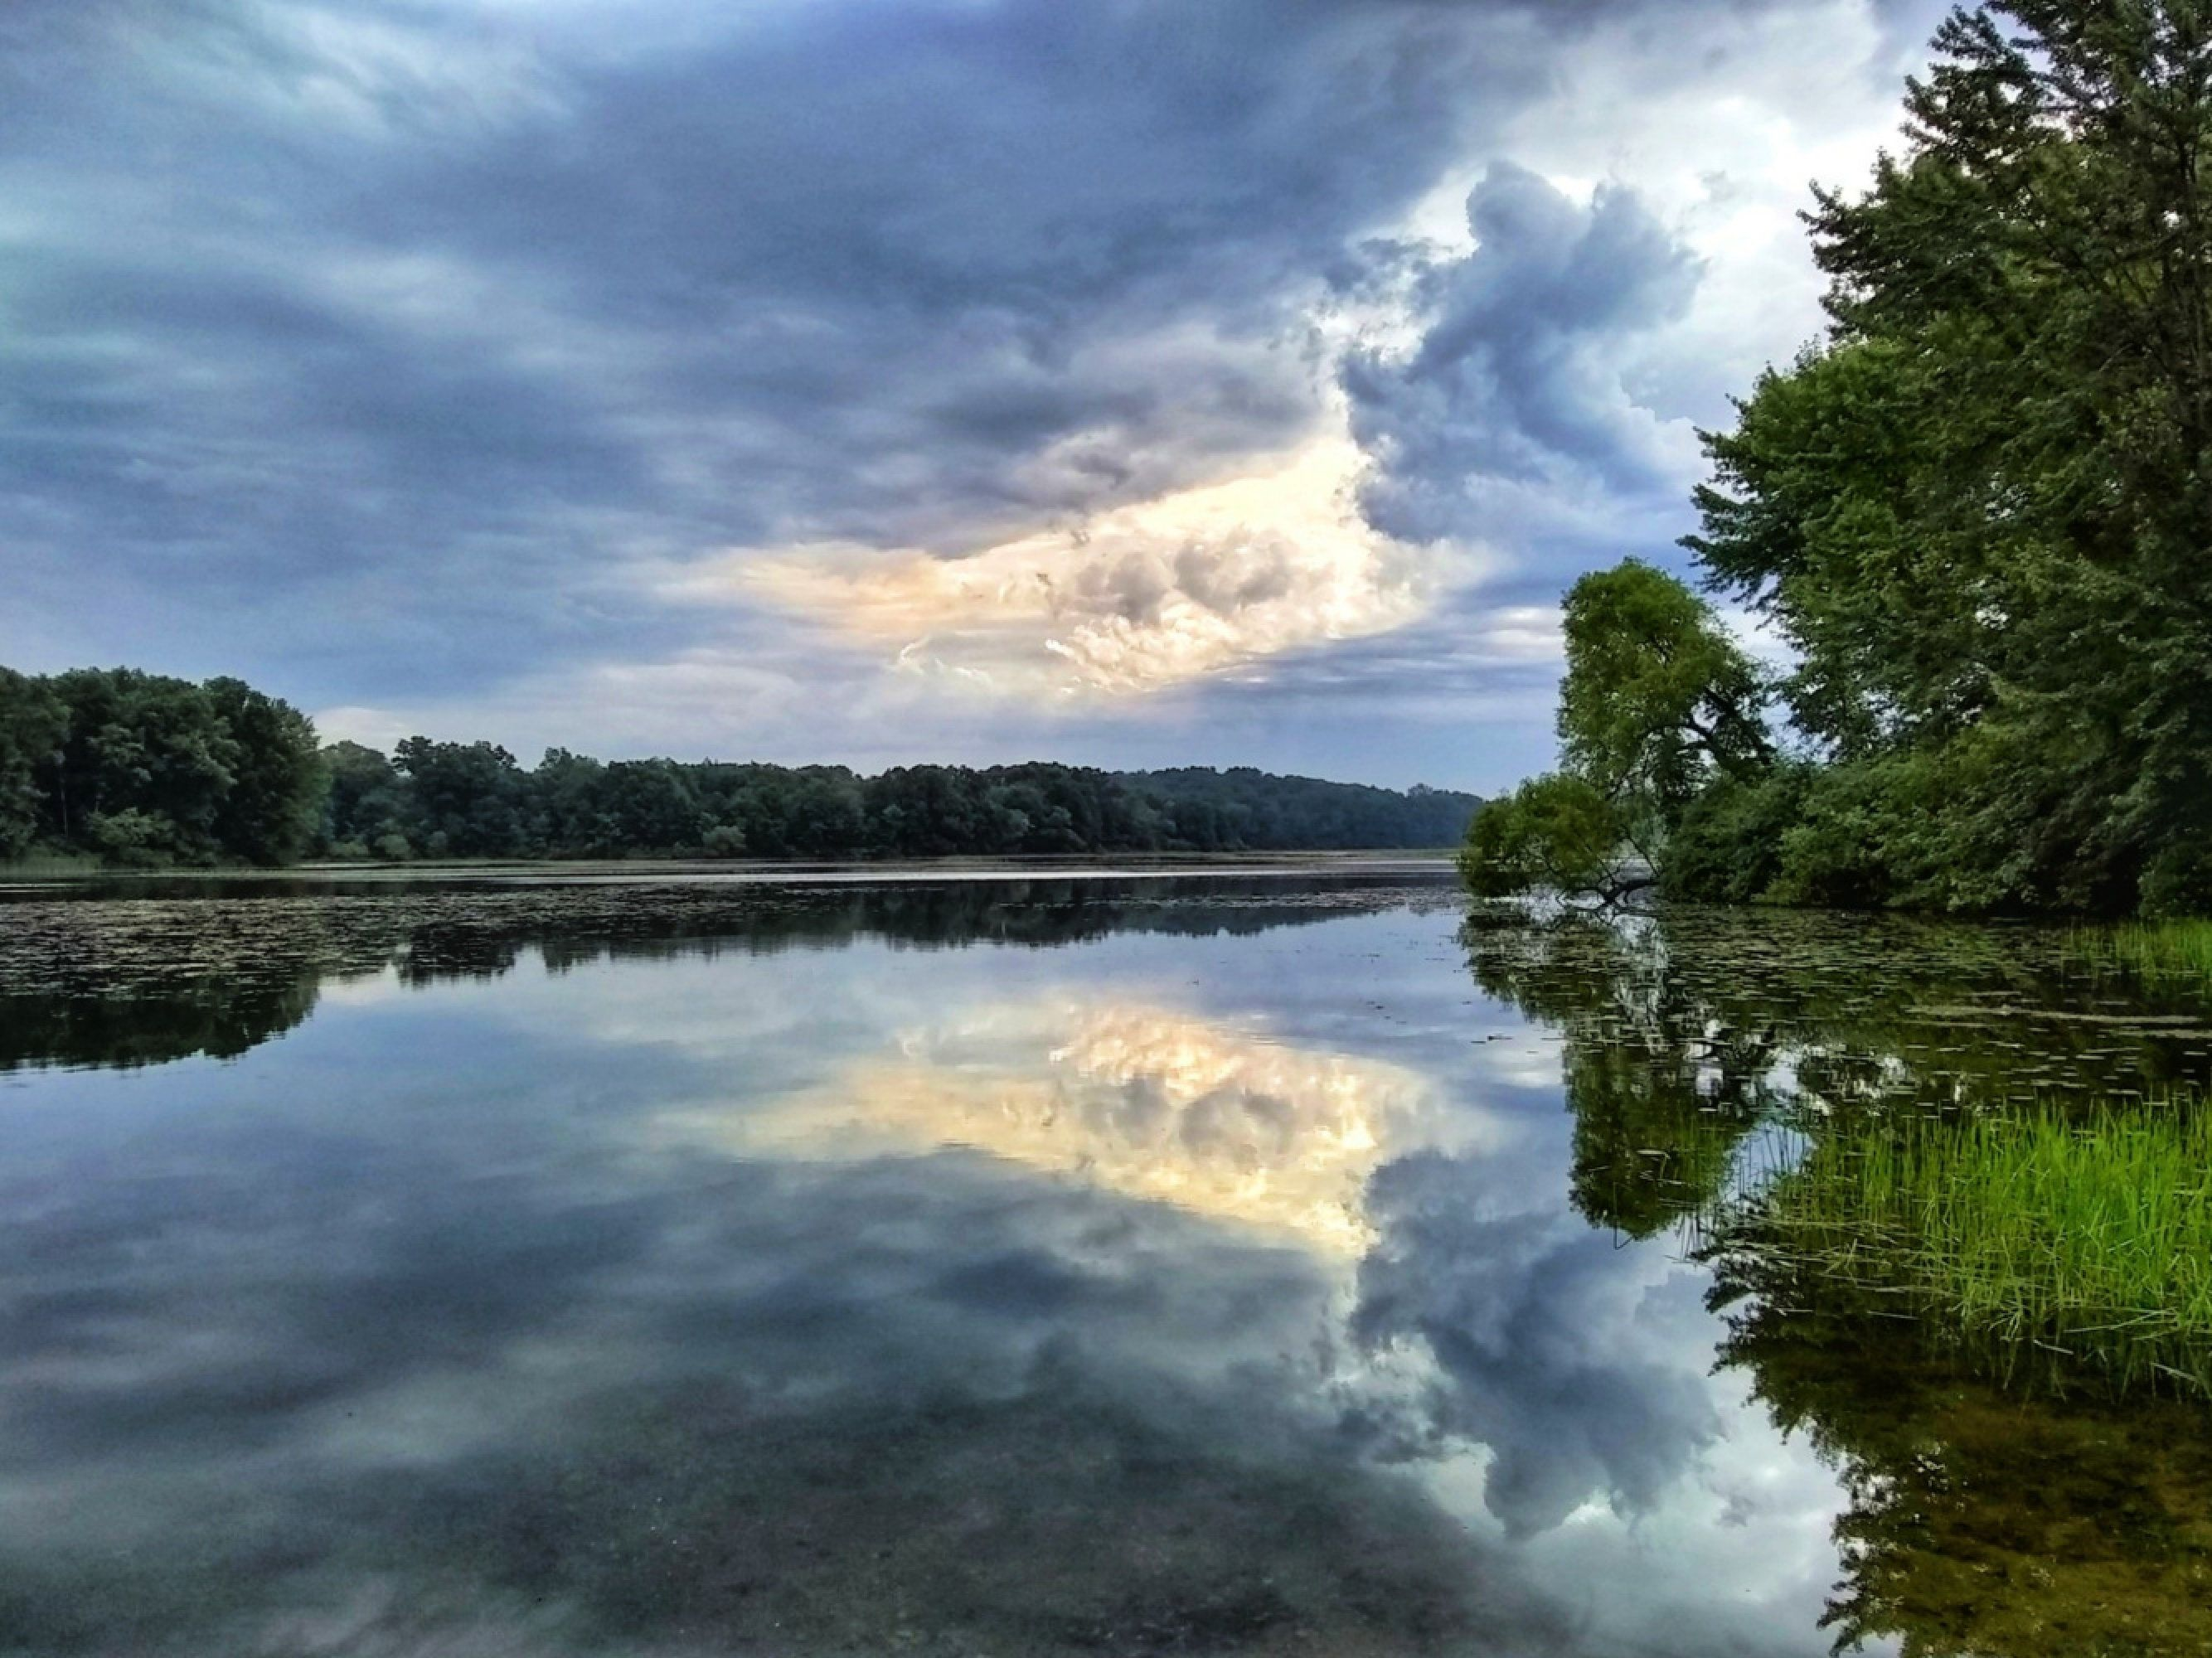 Clouds Reflecting On Blue Water Blue Sky White Clouds Green Trees Print Lake Reflection Lake Decor Green Tree Line Sky Swirls Autumn Landscape Water Winter Landscape